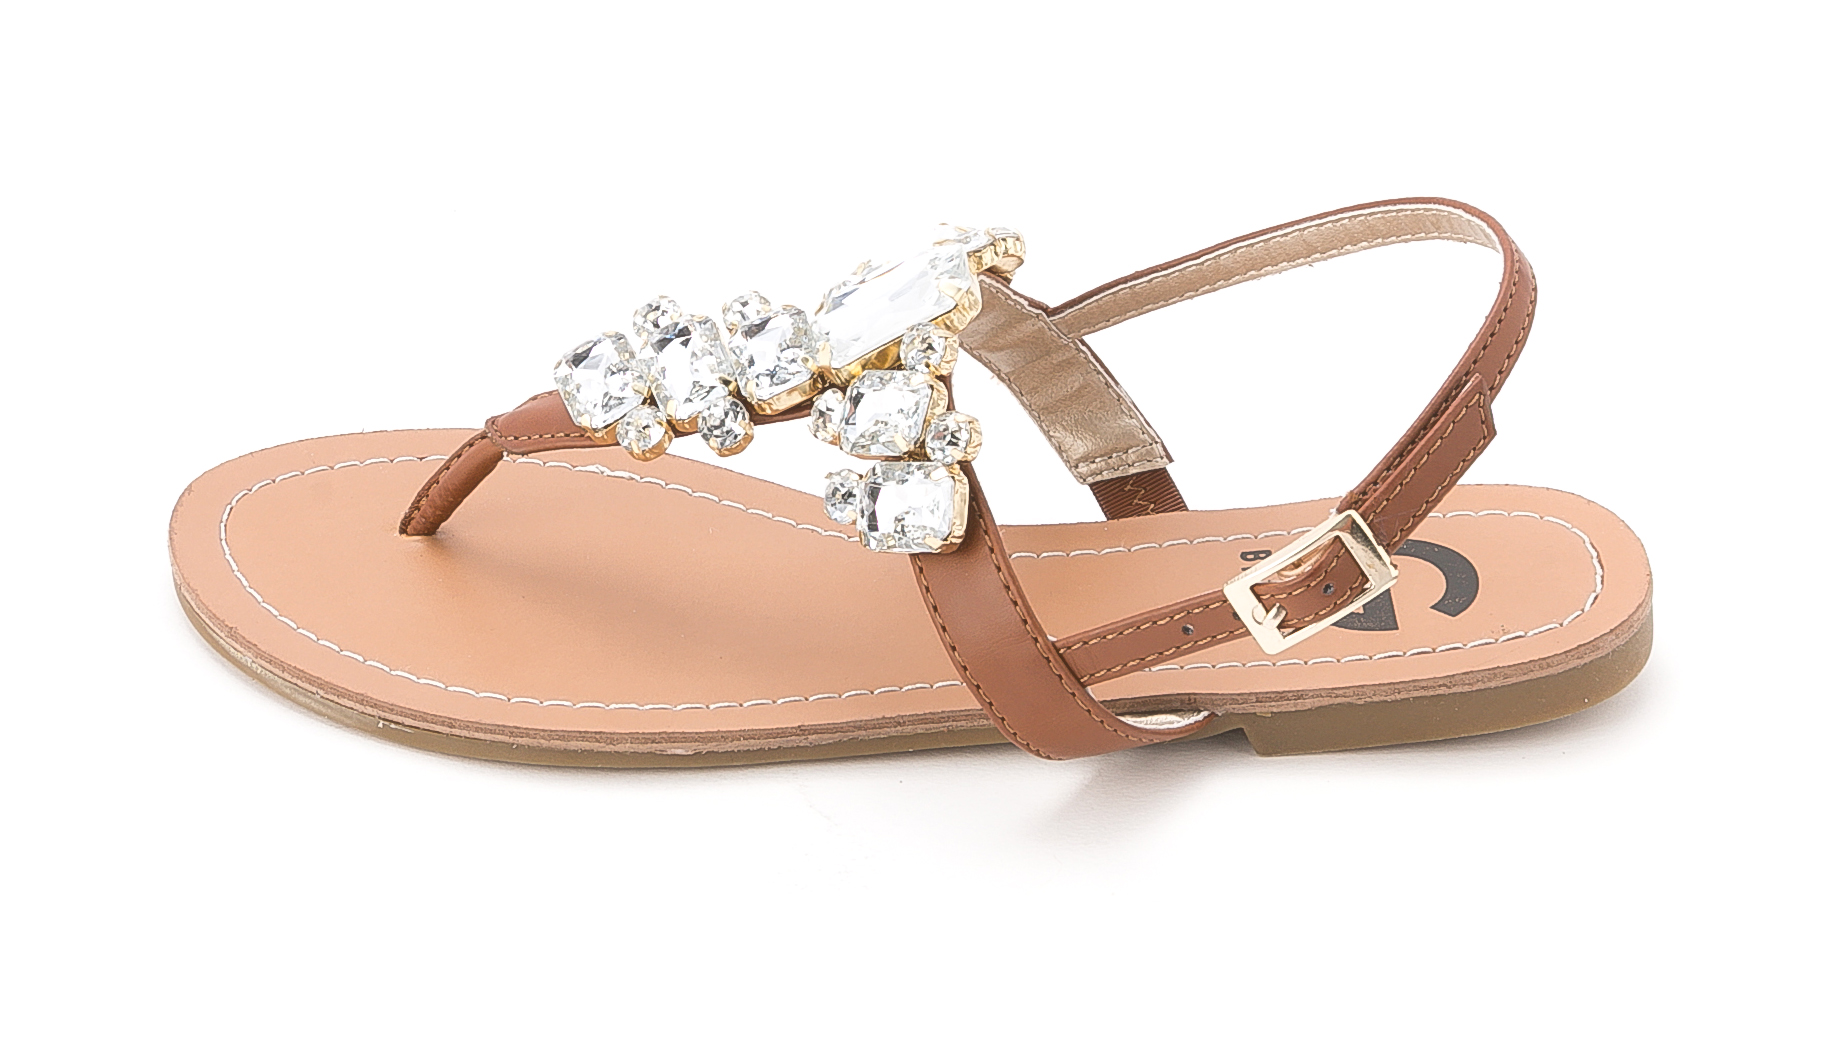 5544444d8 G BY GUESS - G By Guess Women s Kyli Flat Thong Crystal Sandals ...